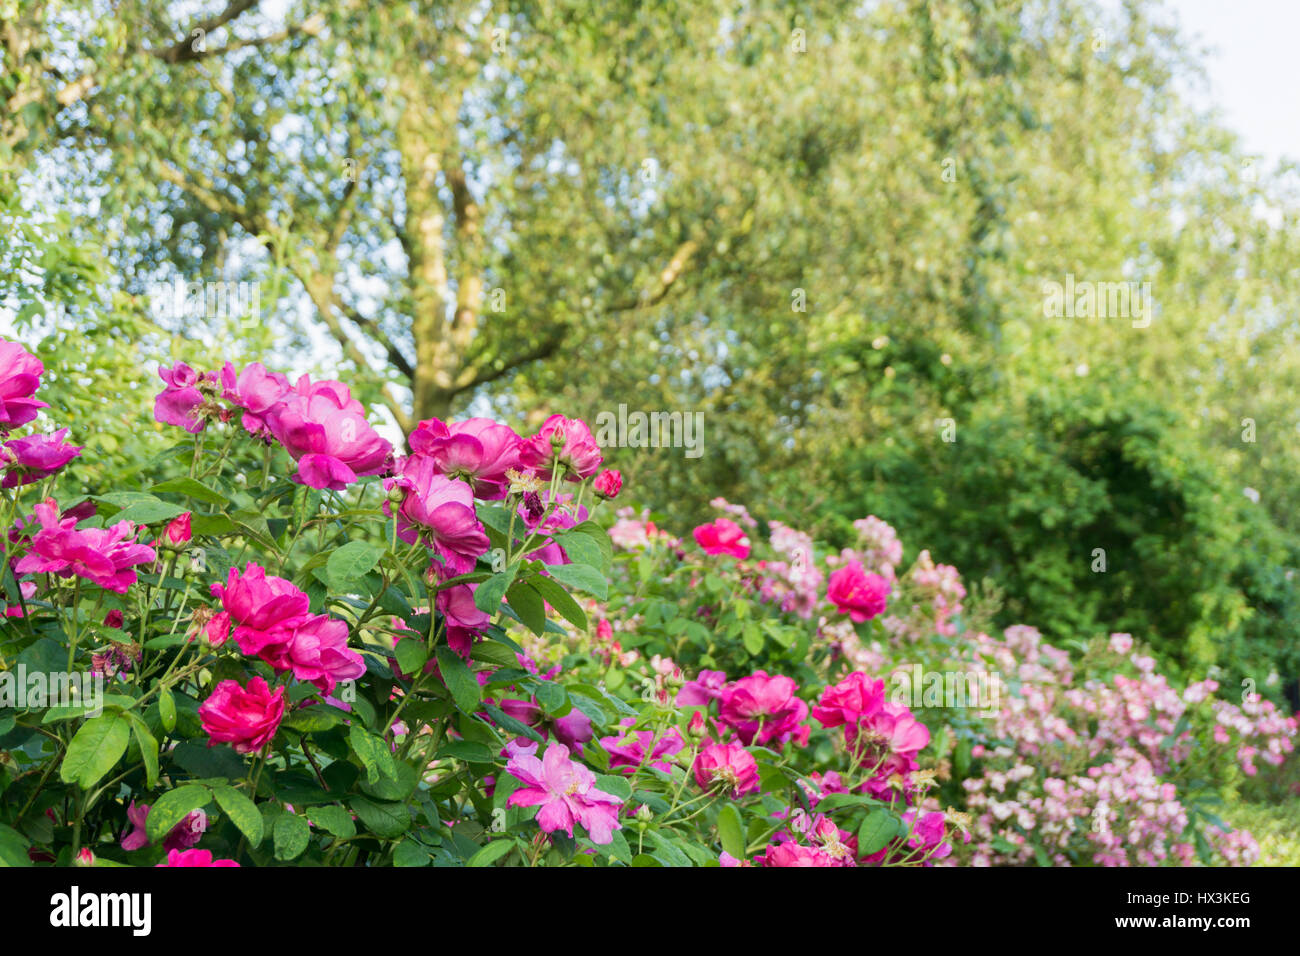 Pink Flowers On A Bush In The Countryside Stock Photo 136534792 Alamy